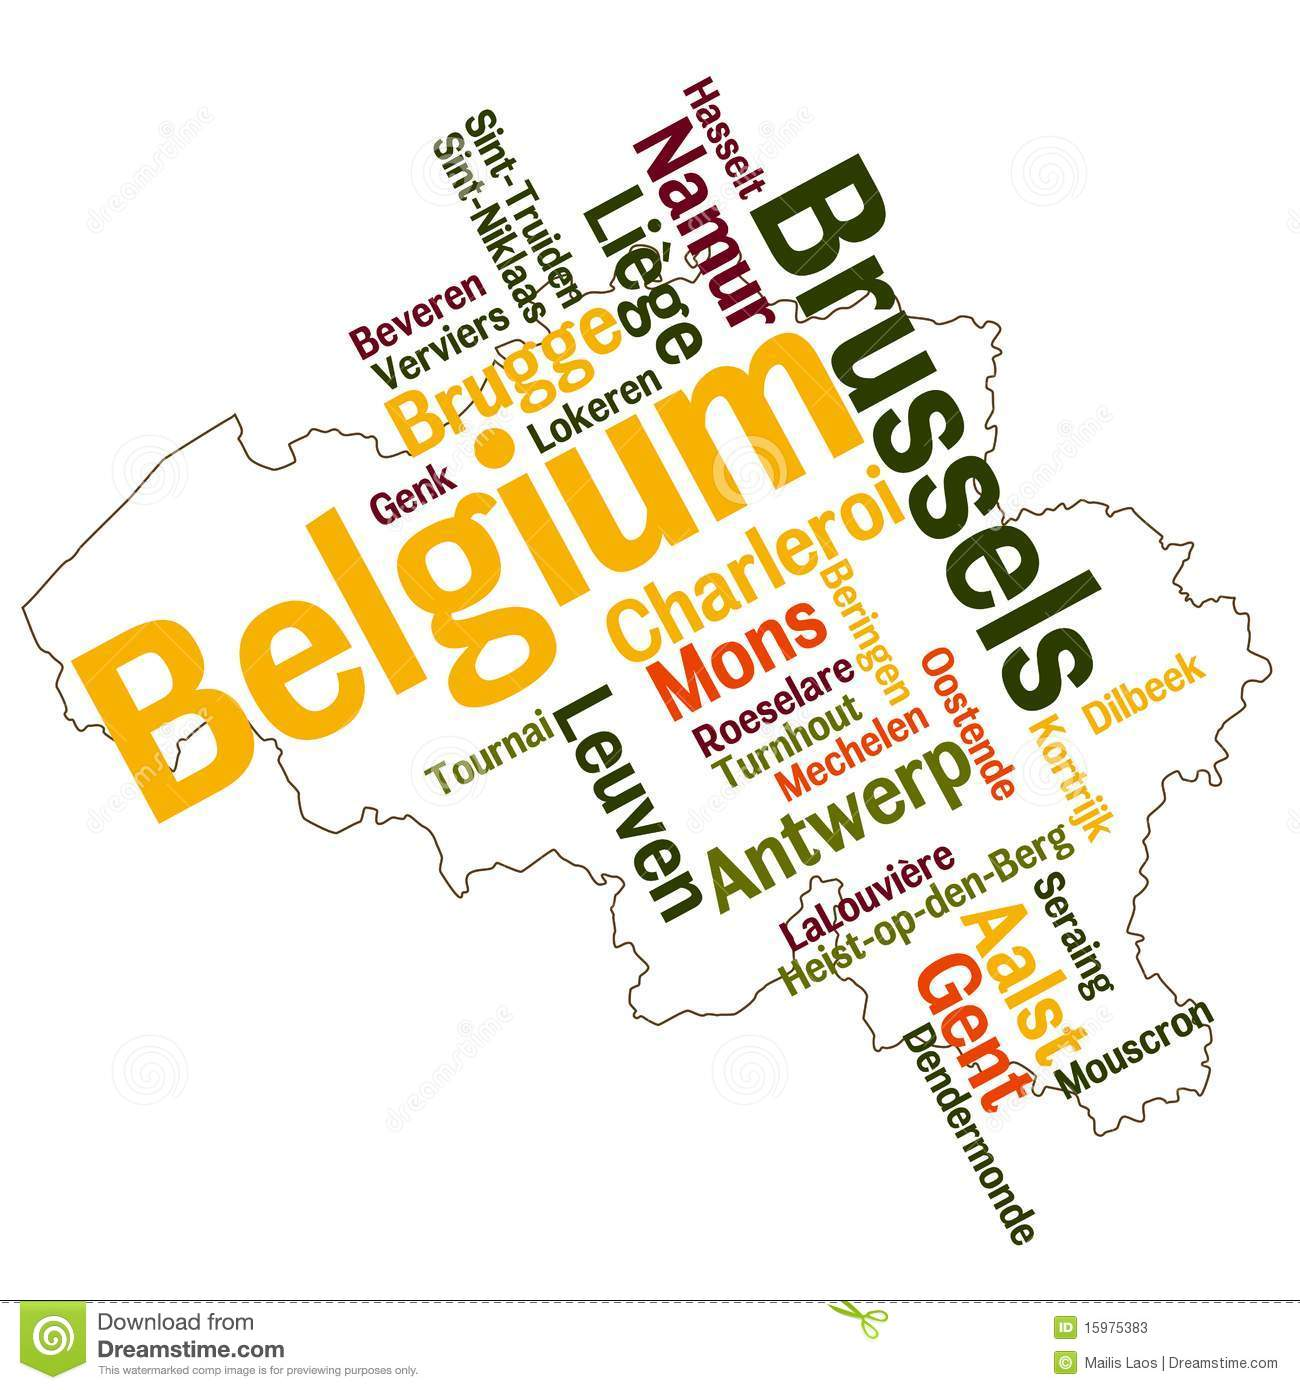 Belgium Map And Cities Photos Image 15975383 – Map of Belgium with Cities